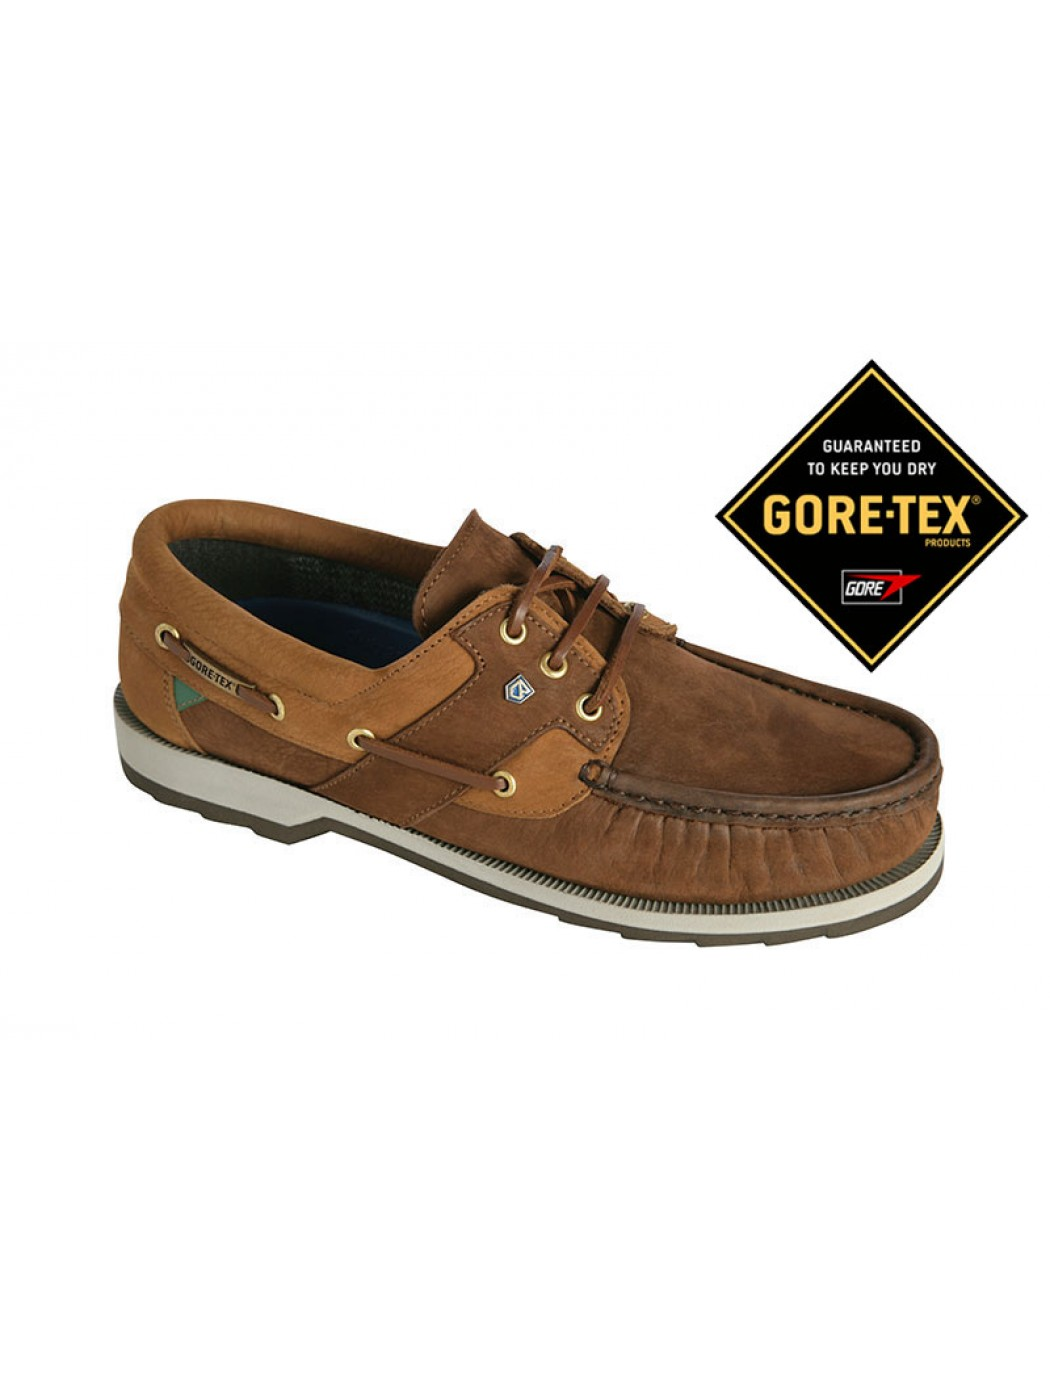 clipper-mens-decks-donkey-brown-brown